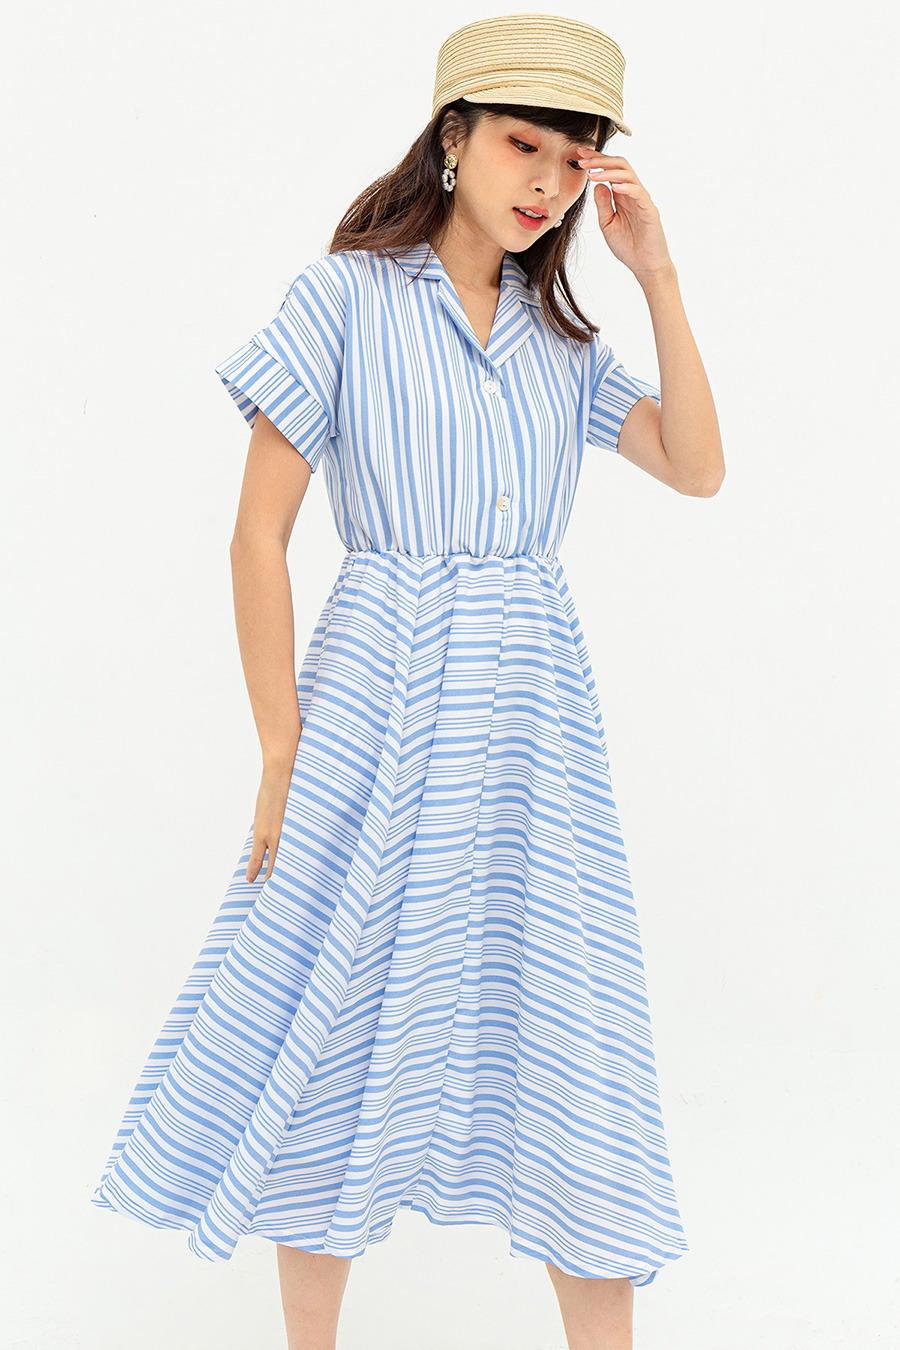 HARLEY DRESS - MILK JUG STRIPE [BY MODPARADE]